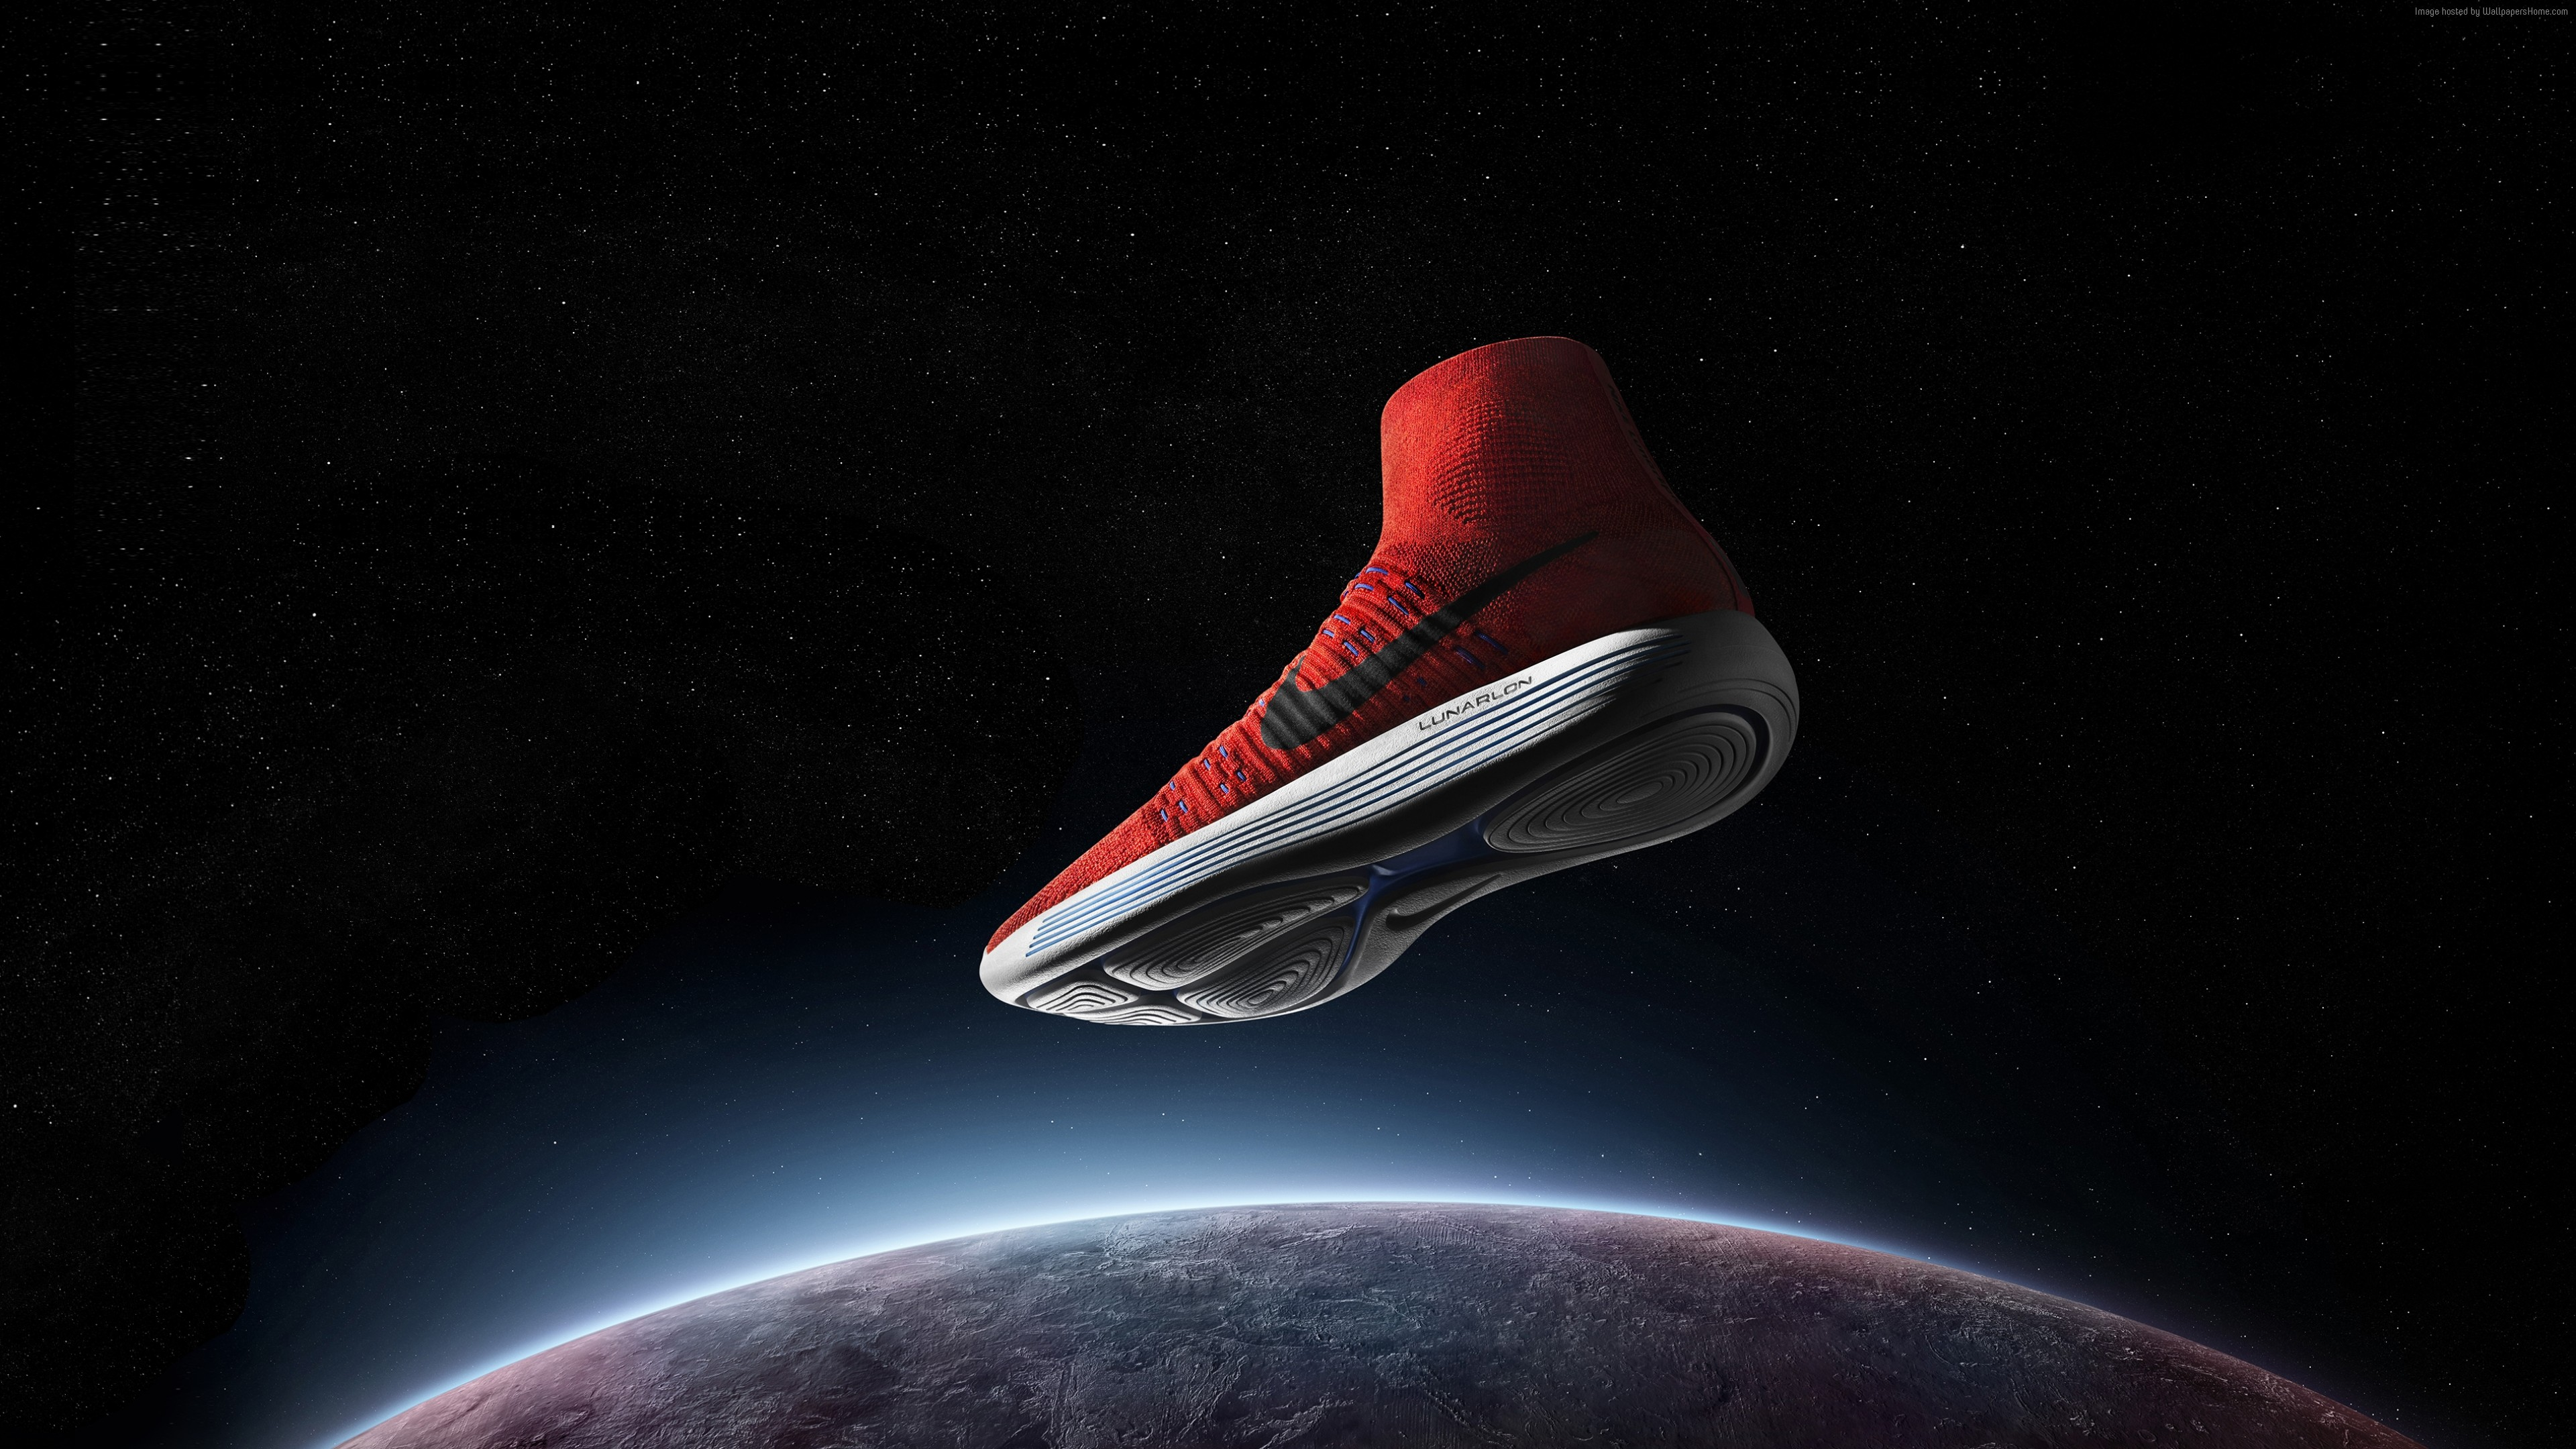 Wallpaper Nike LunarEpic FlyKnit, sneakers, space, Sport